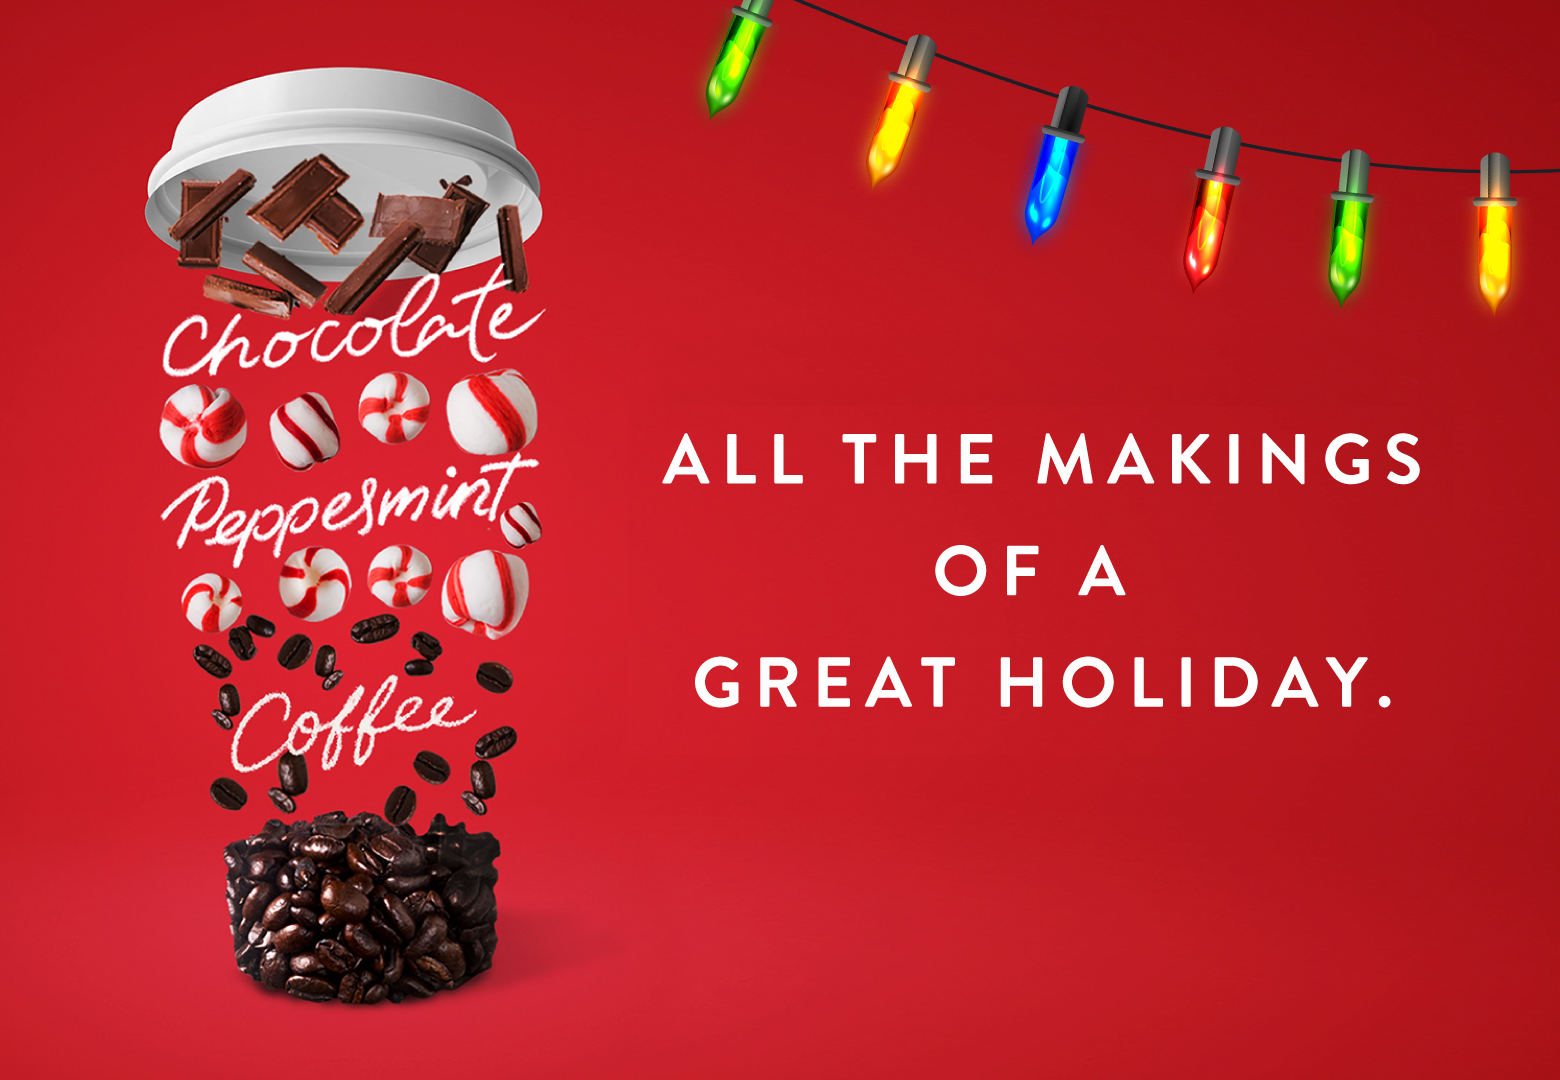 Krispy Kreme Doughnuts Coffee Drinks Grosir Boxer Branded Box 210 Chocolate Pepperment All The Makings Of A Great Holiday